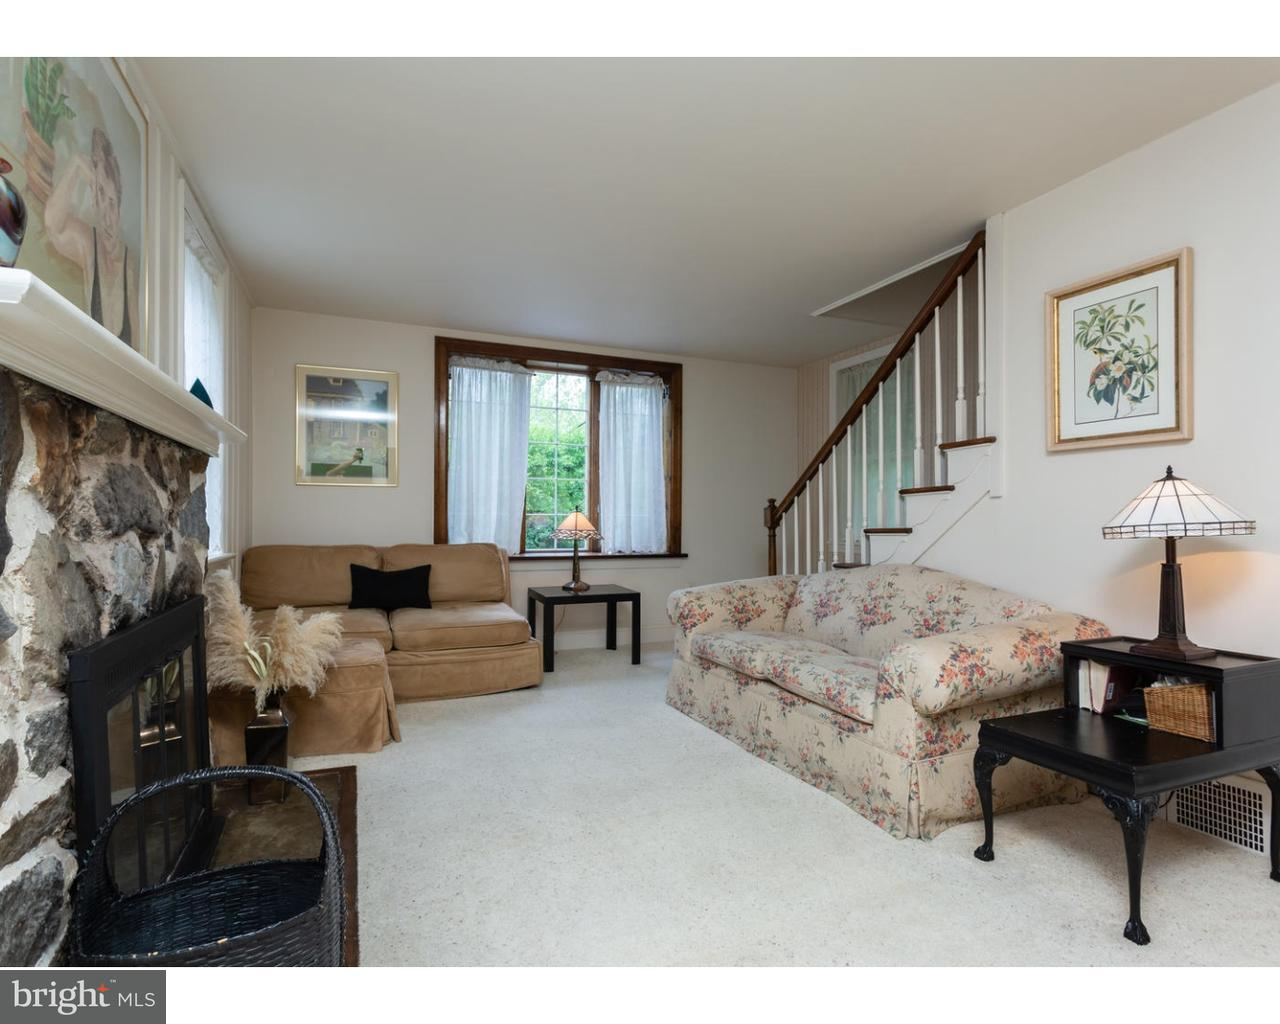 1638 VALLEY FORGE RD, PHOENIXVILLE - Listed at $282,000, PHOENIXVILLE